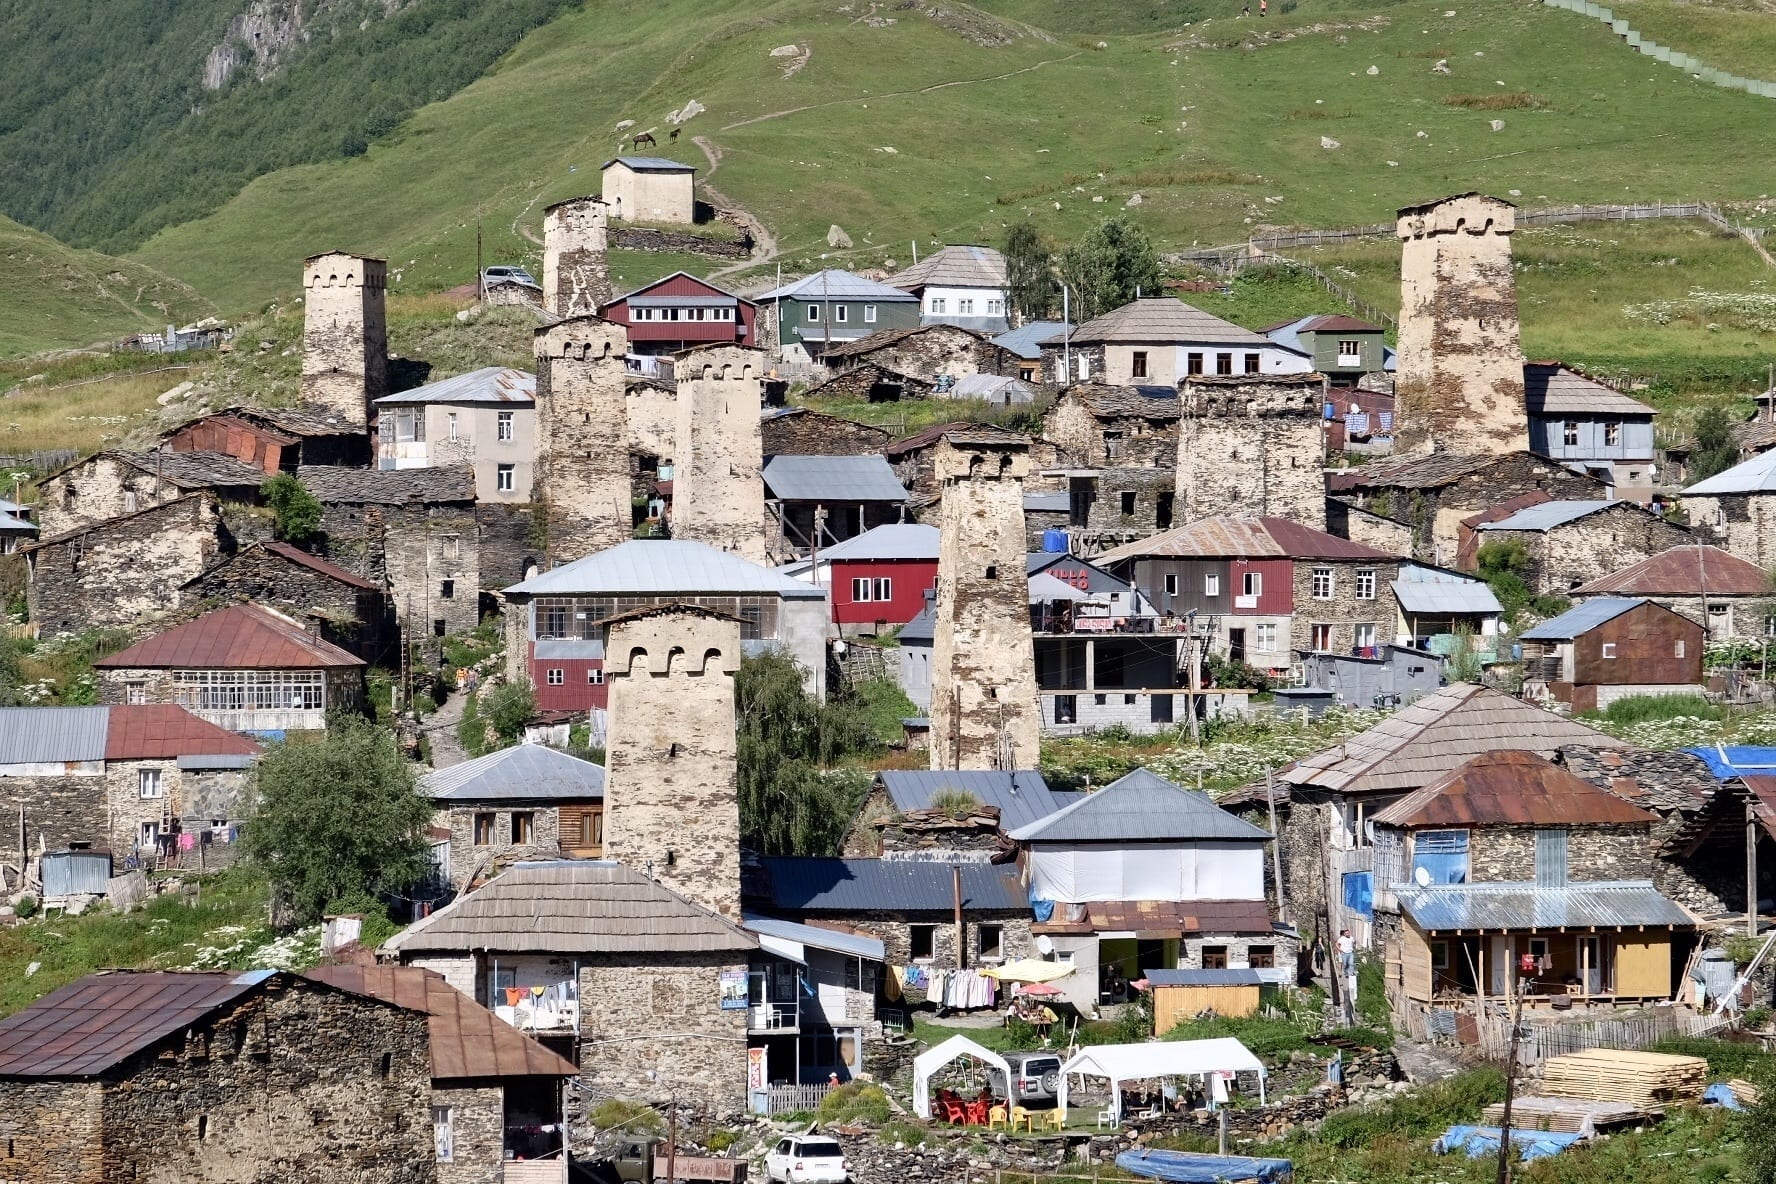 Close-up on medieval stone towers and other buildings in Ushguli, Georgia.